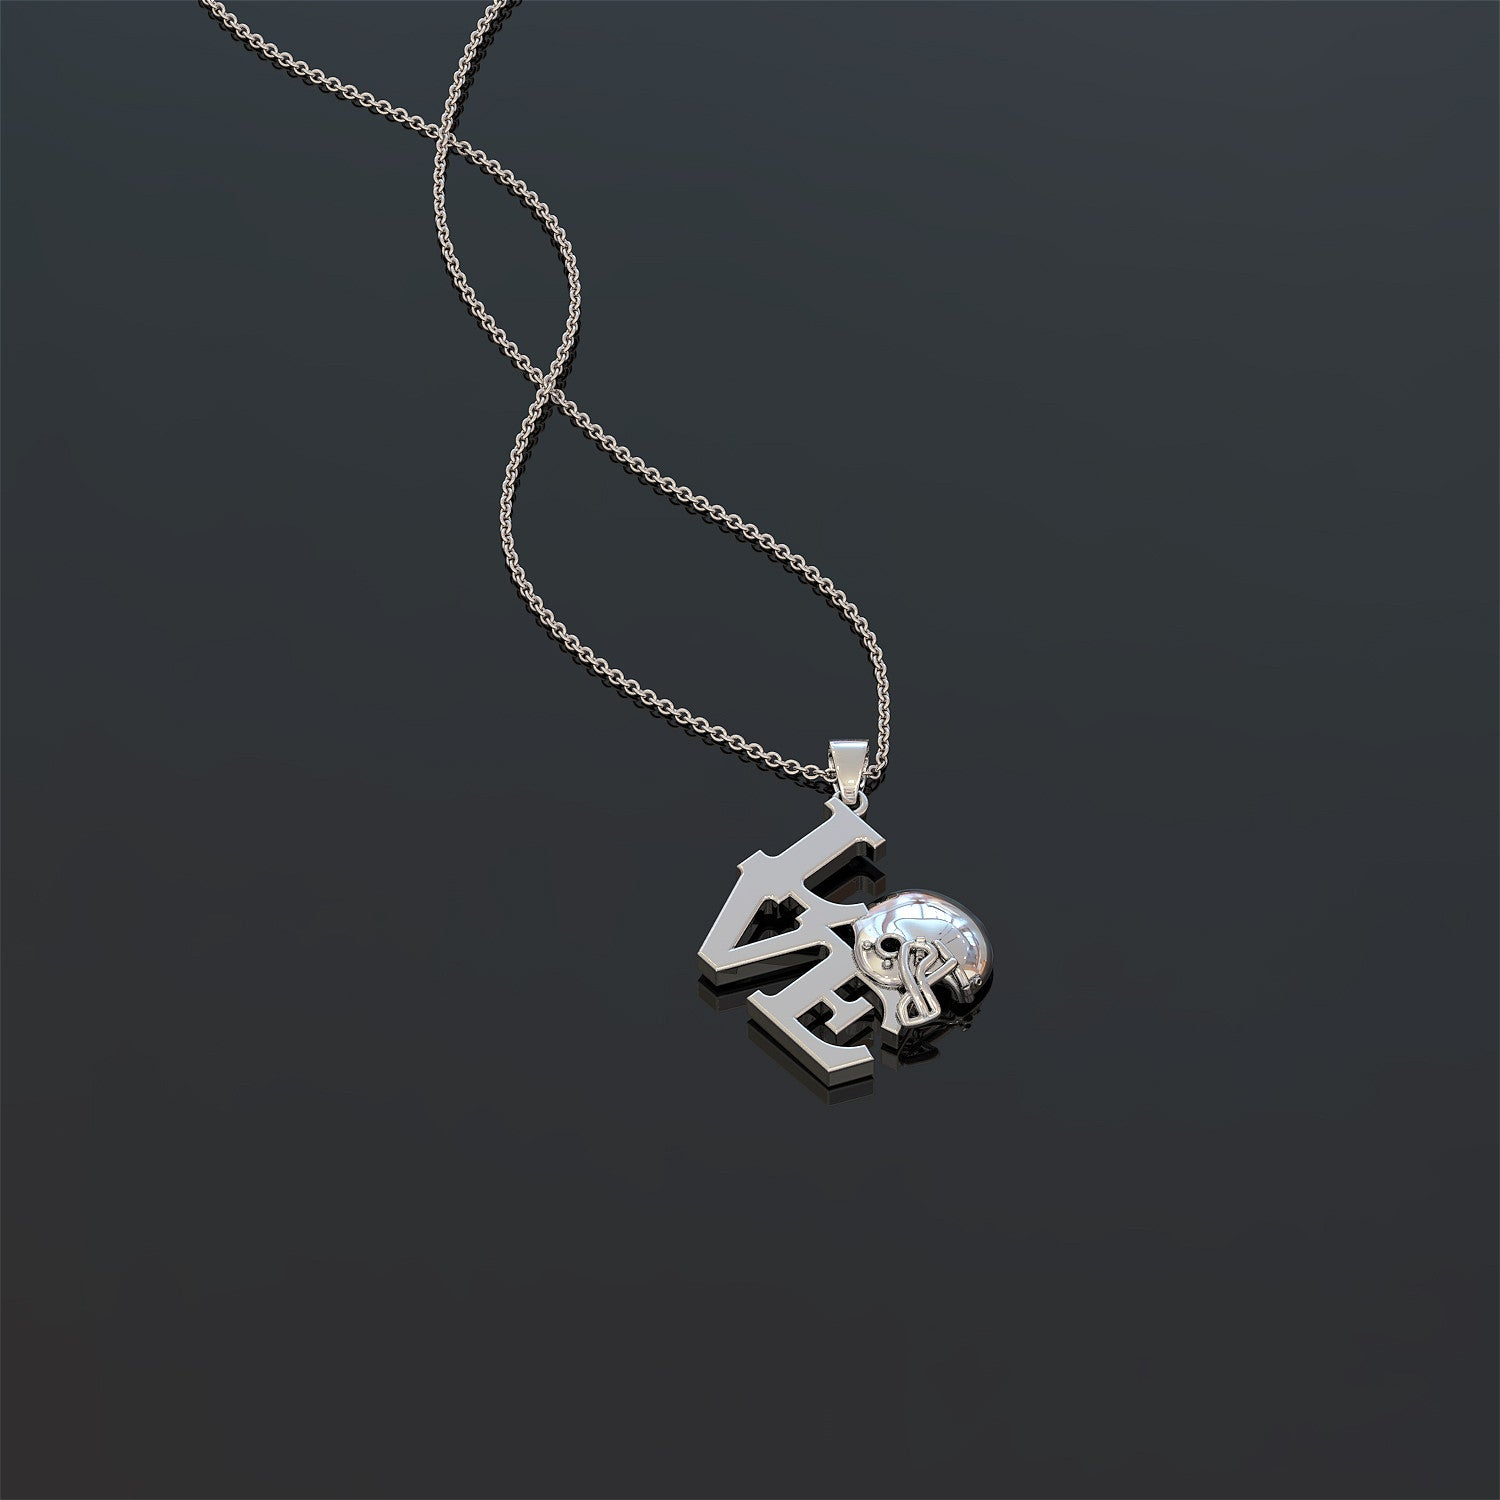 Football (American) Love Necklace